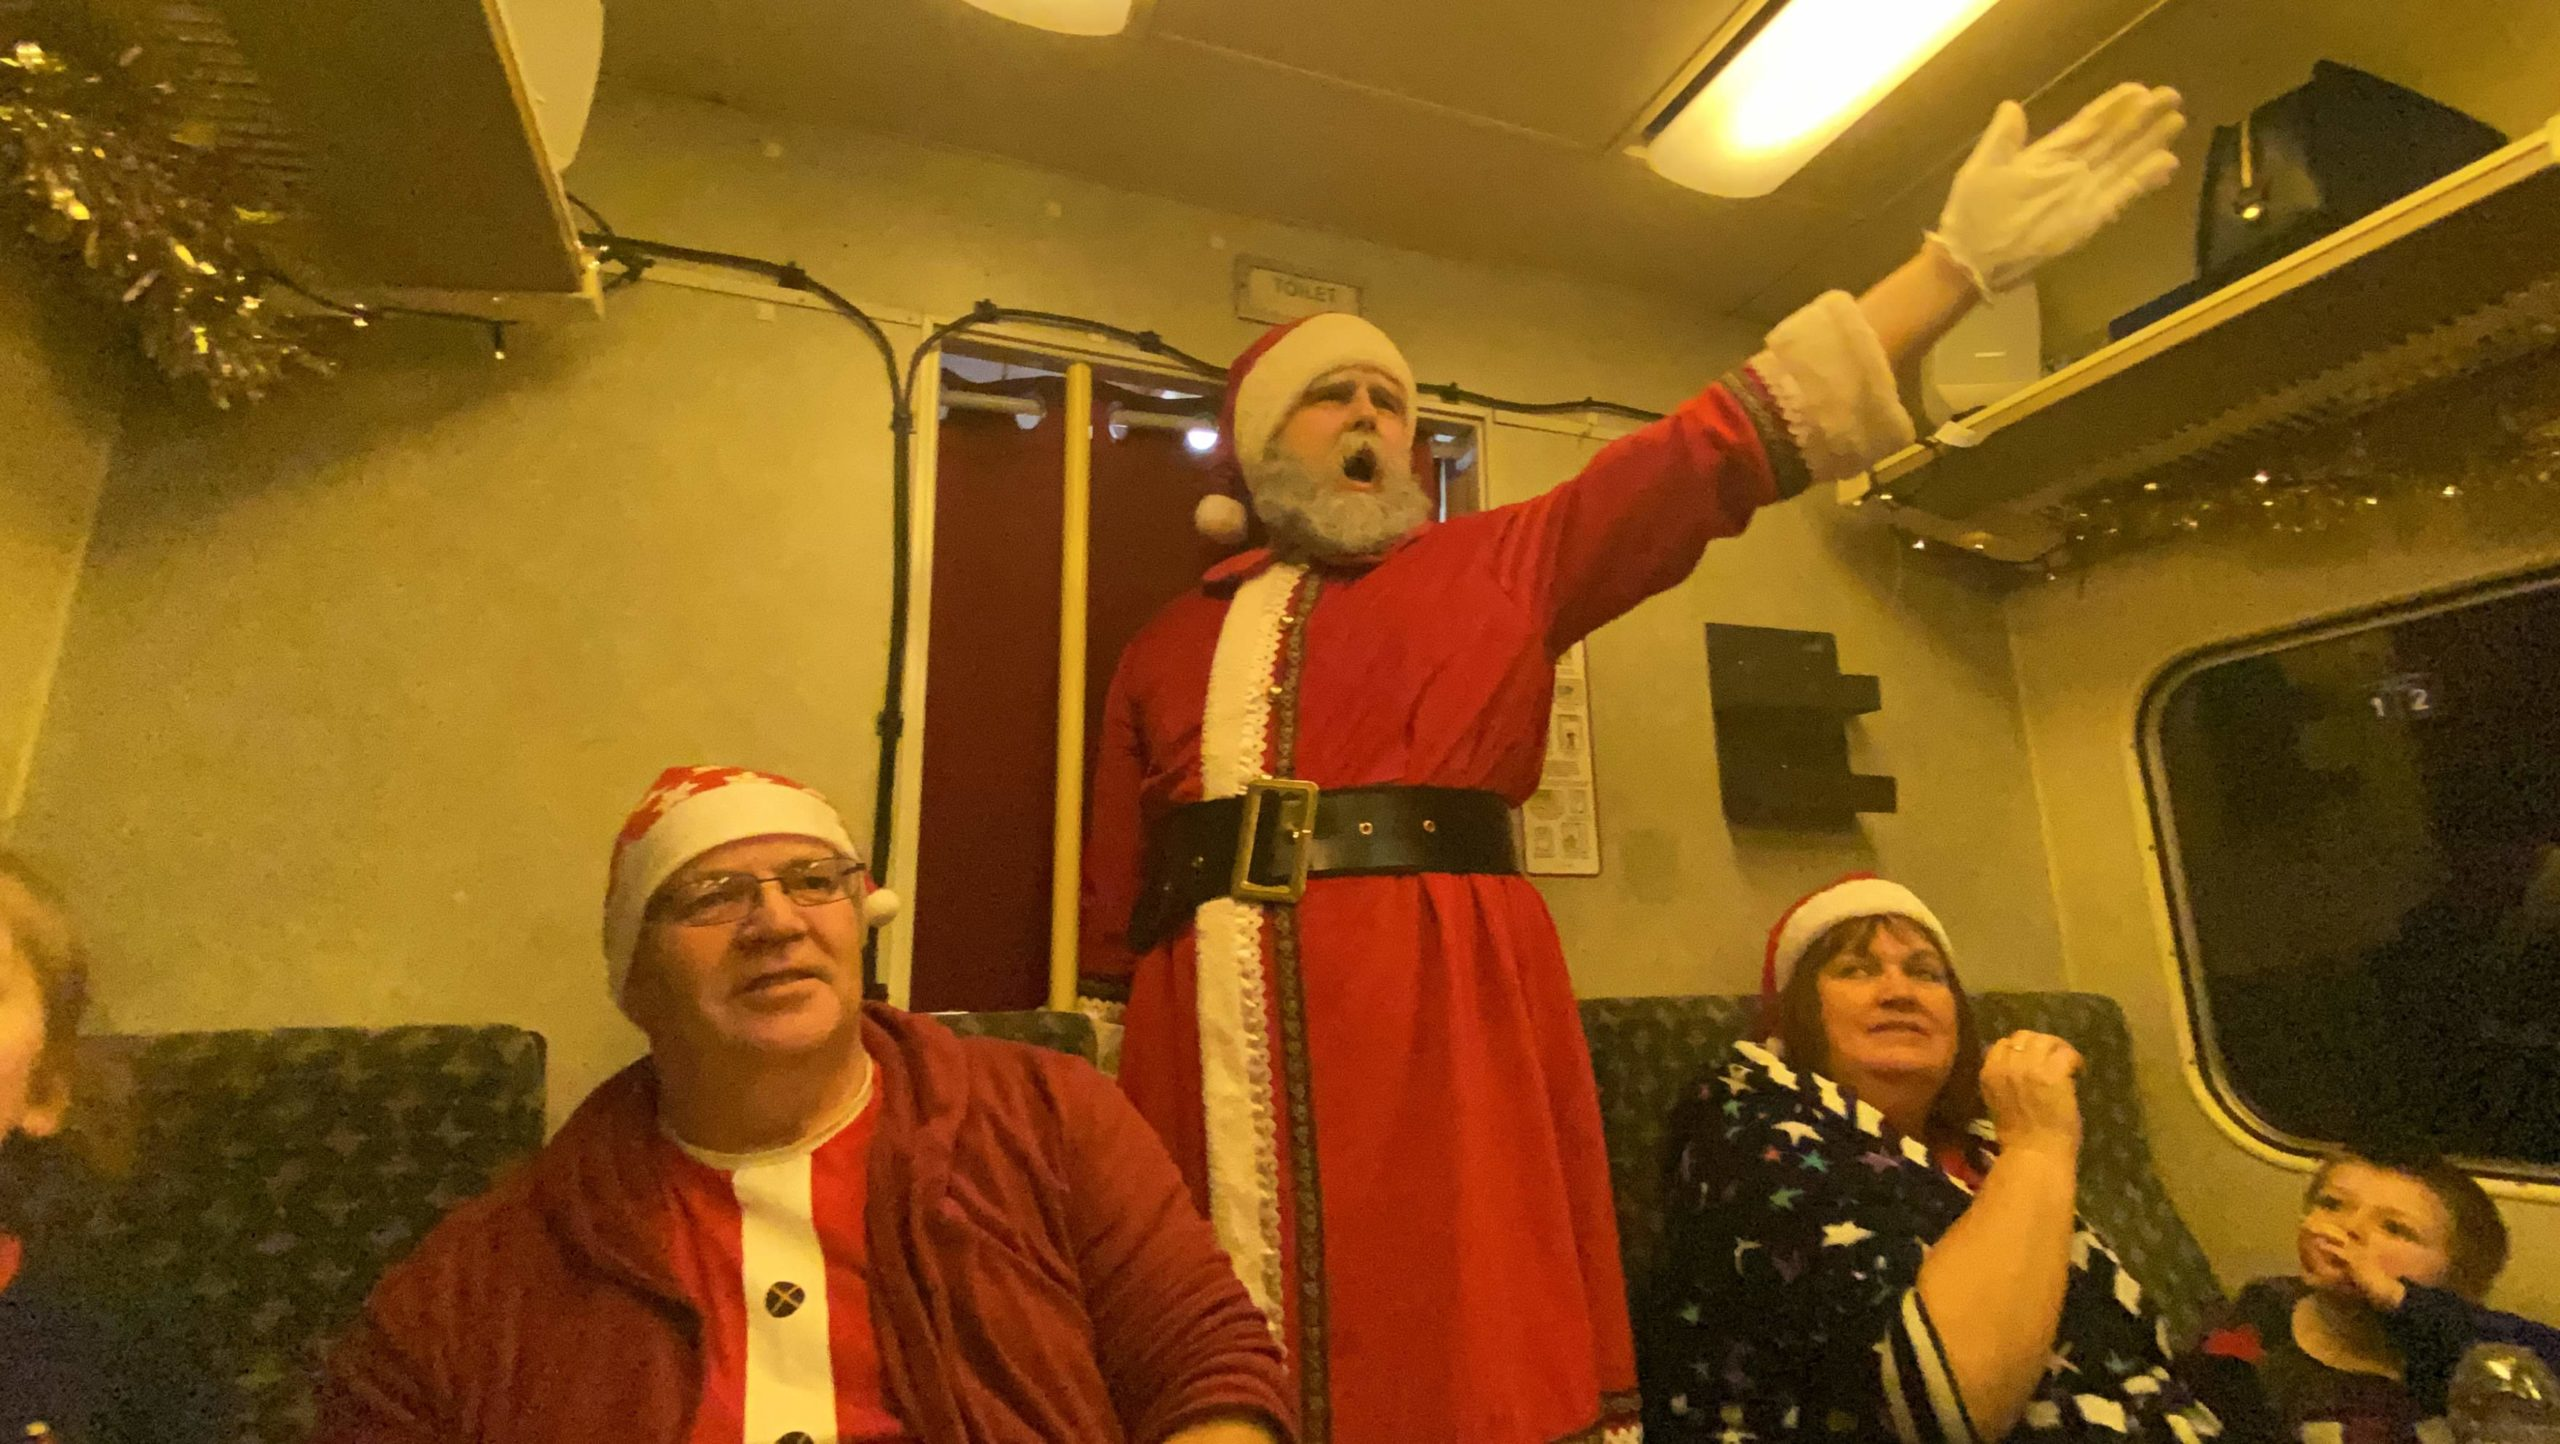 Santa visiting and giving the first gift of Christmas - a silver bell on the polar express